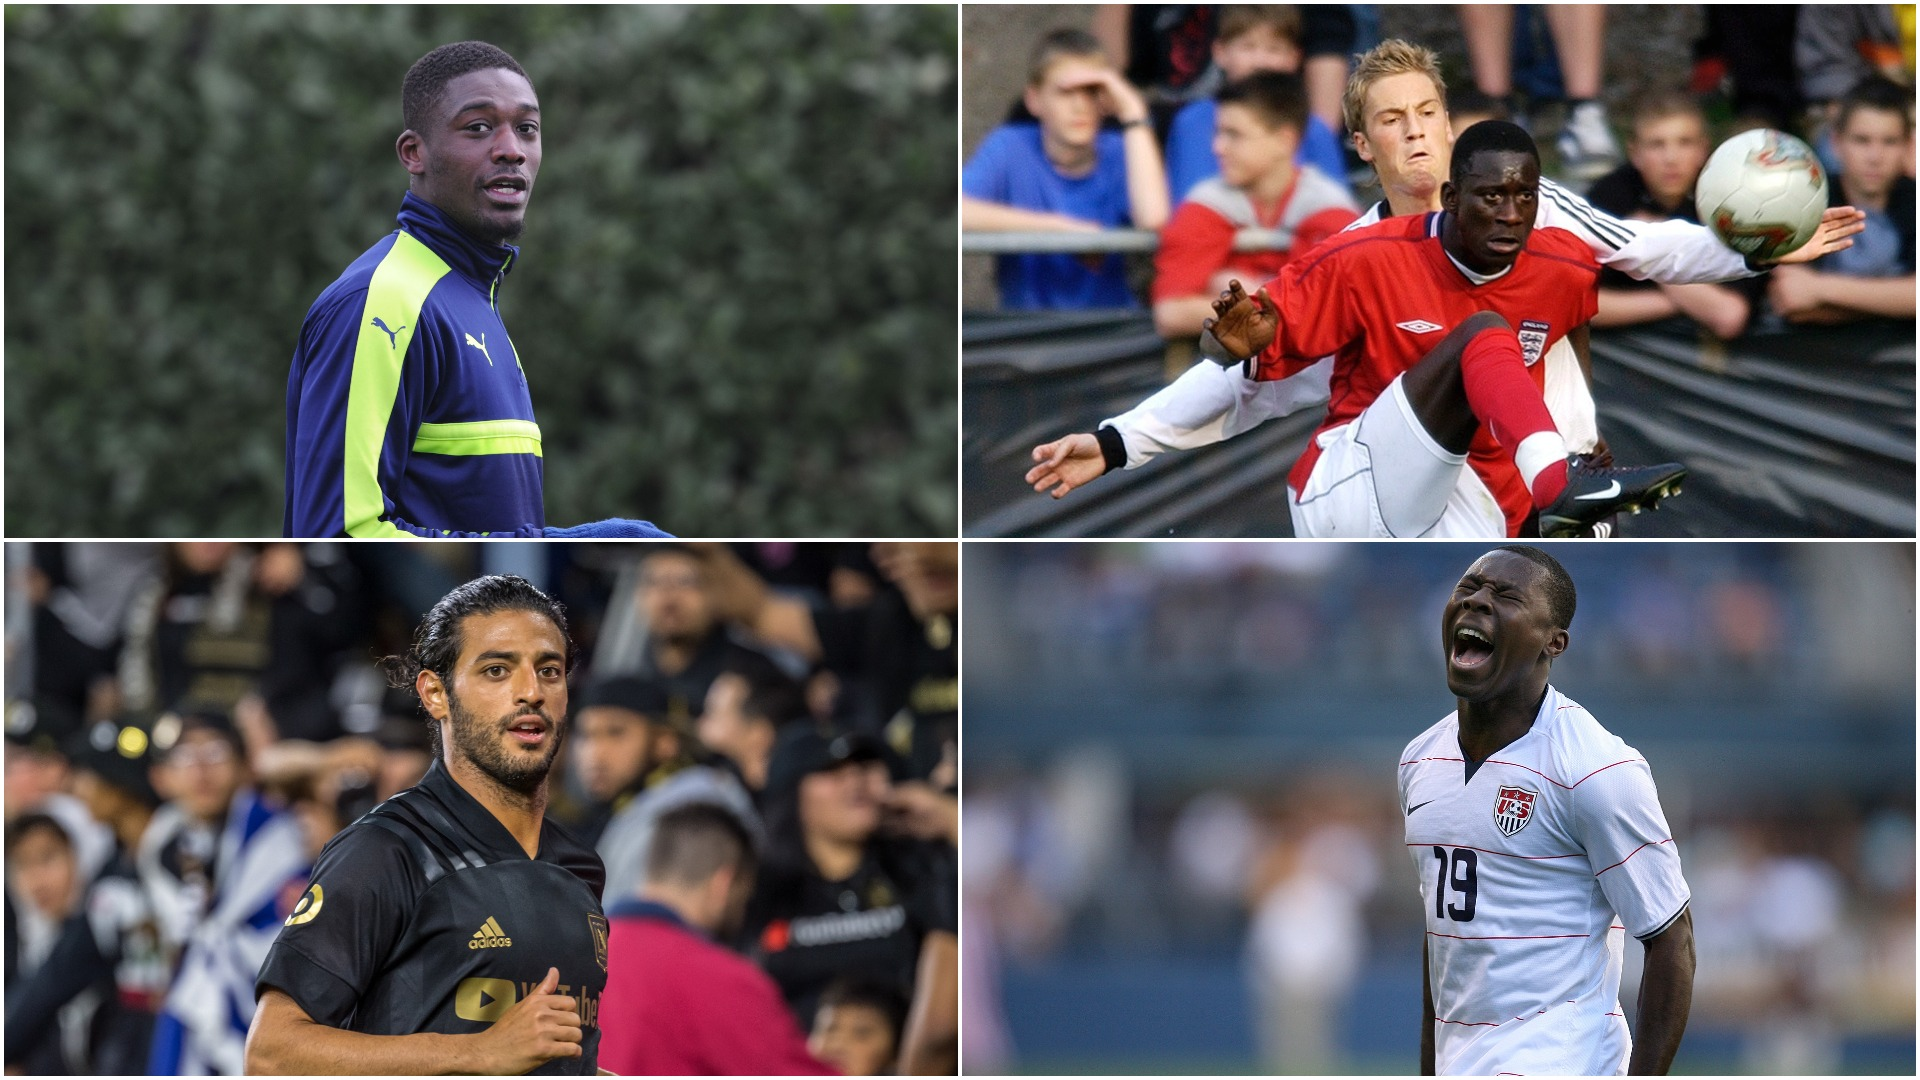 Football Manager 2021: How Cherno Samba, Freddy Adu and other legends of the game fared in real life